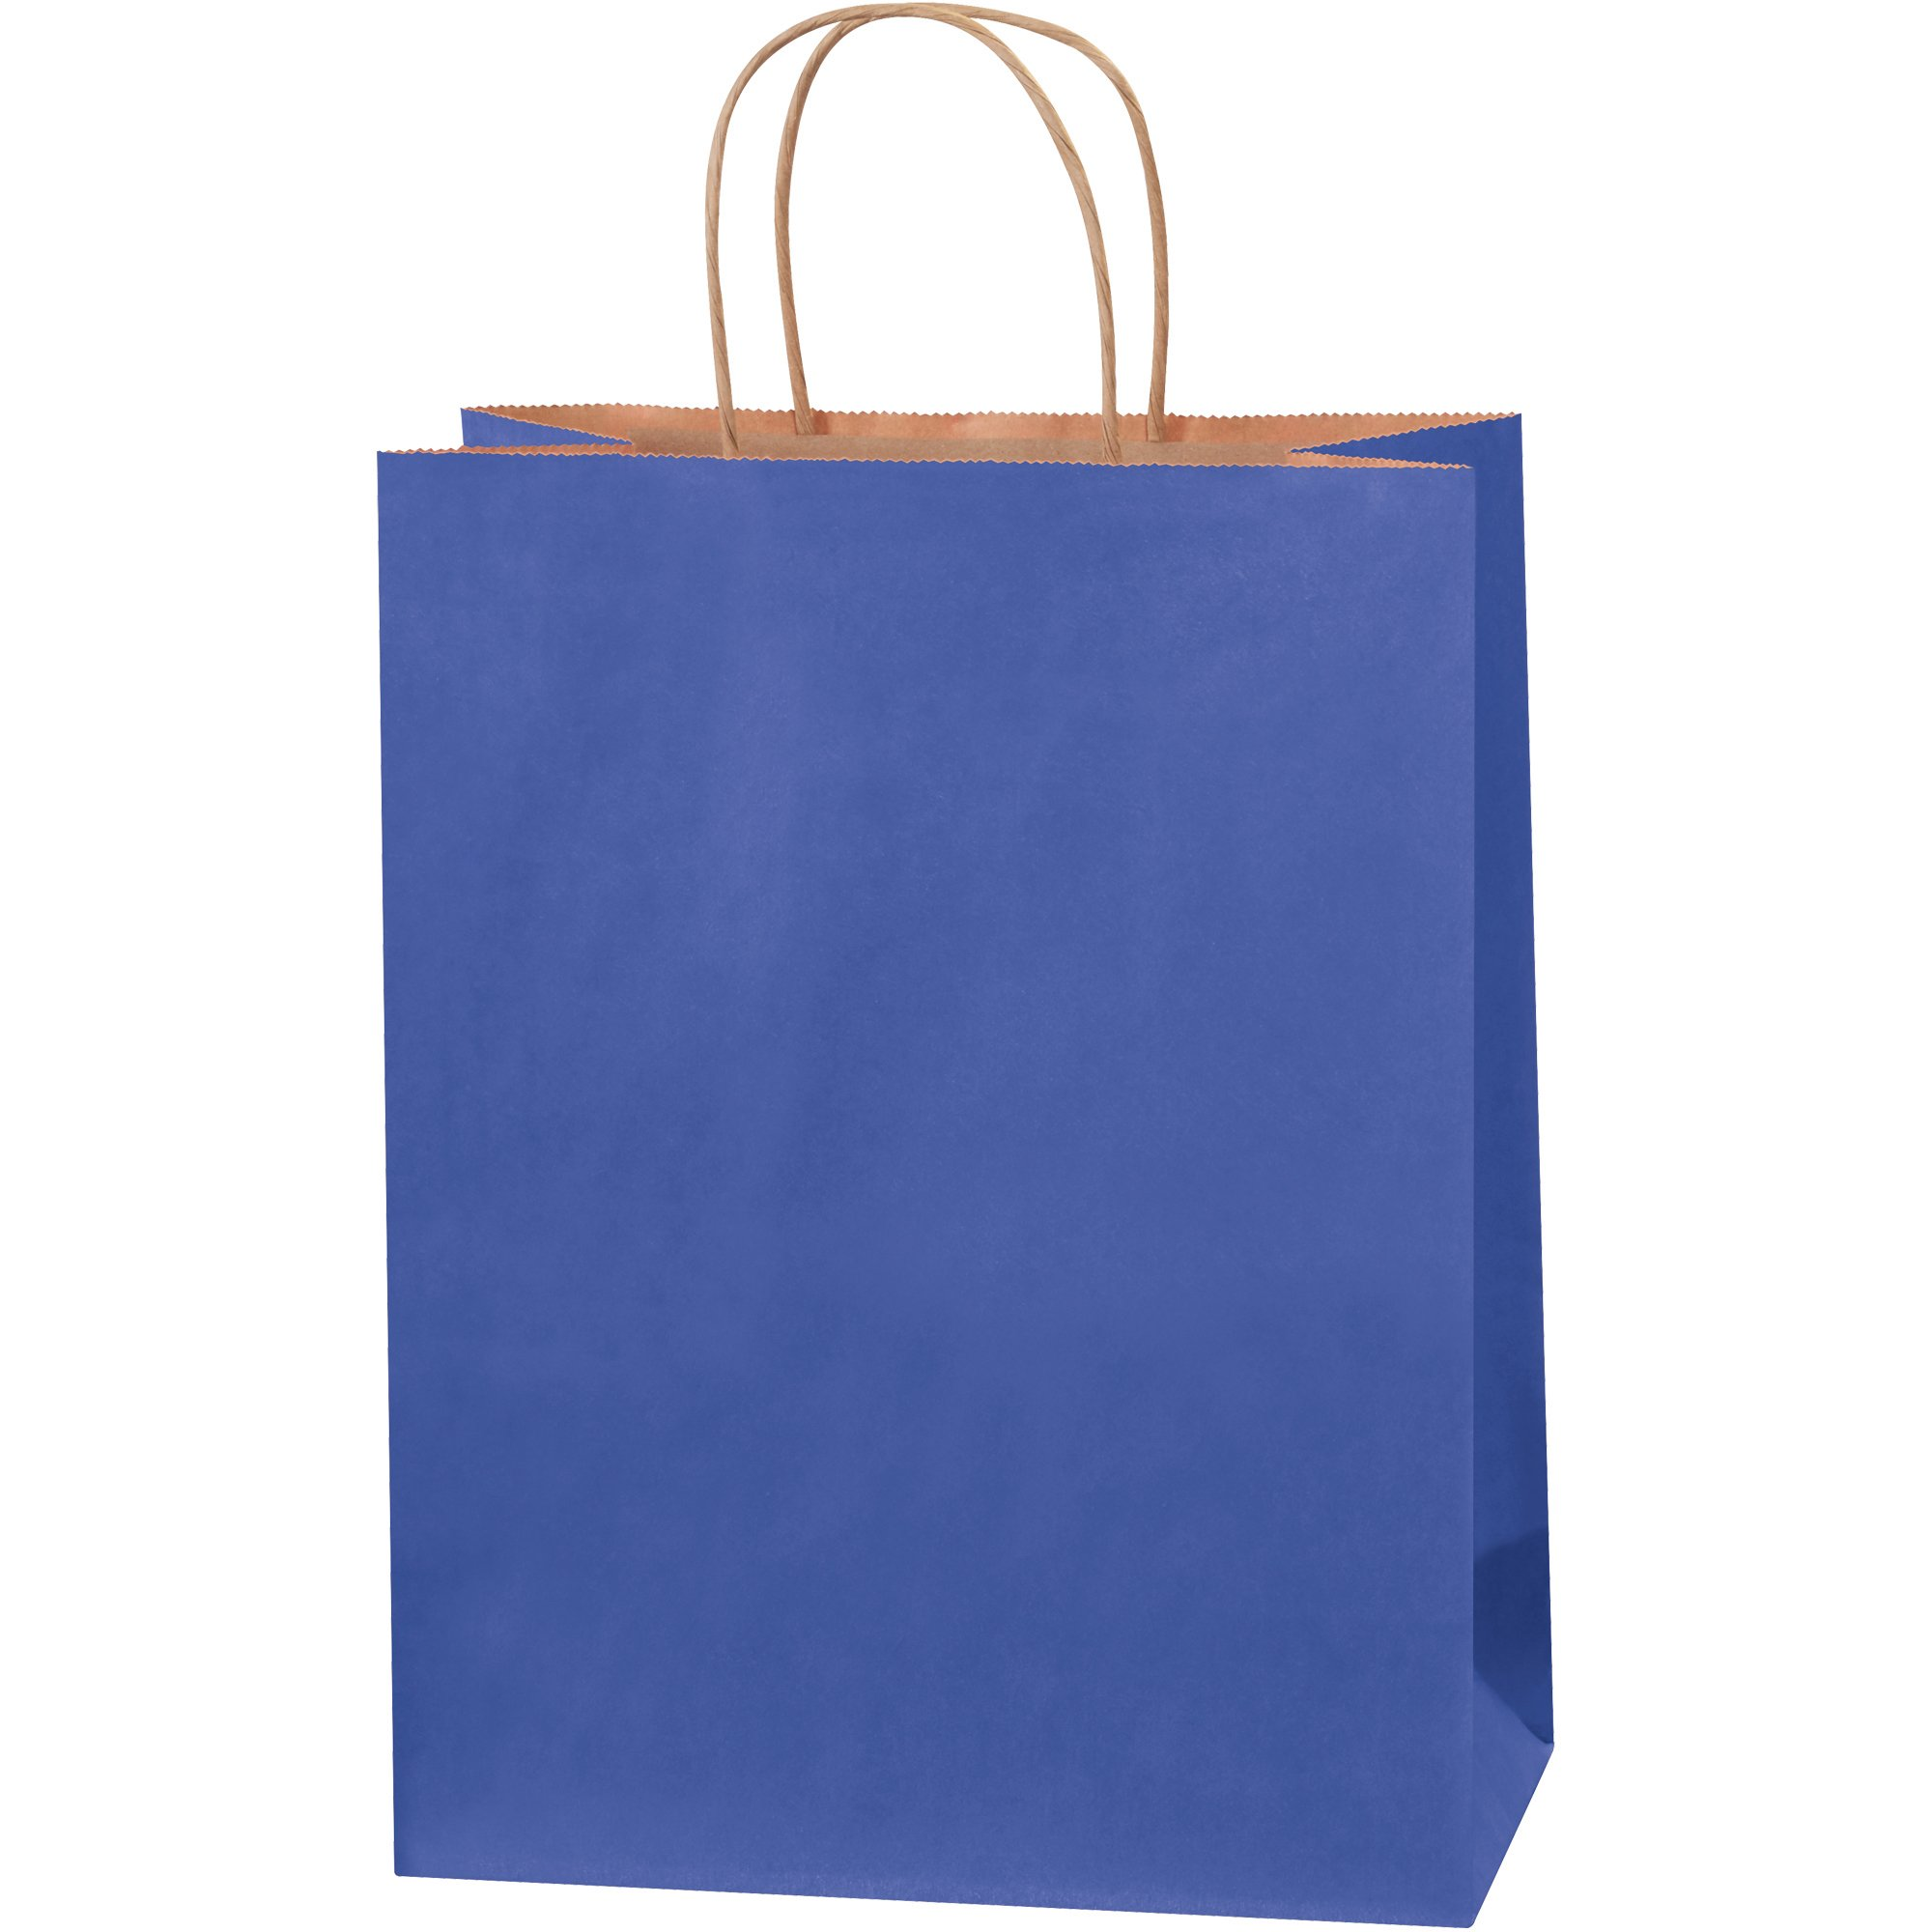 Tinted Shopping Bags, 10'' x 5'' x 13'', Parade Blue, 250/Case